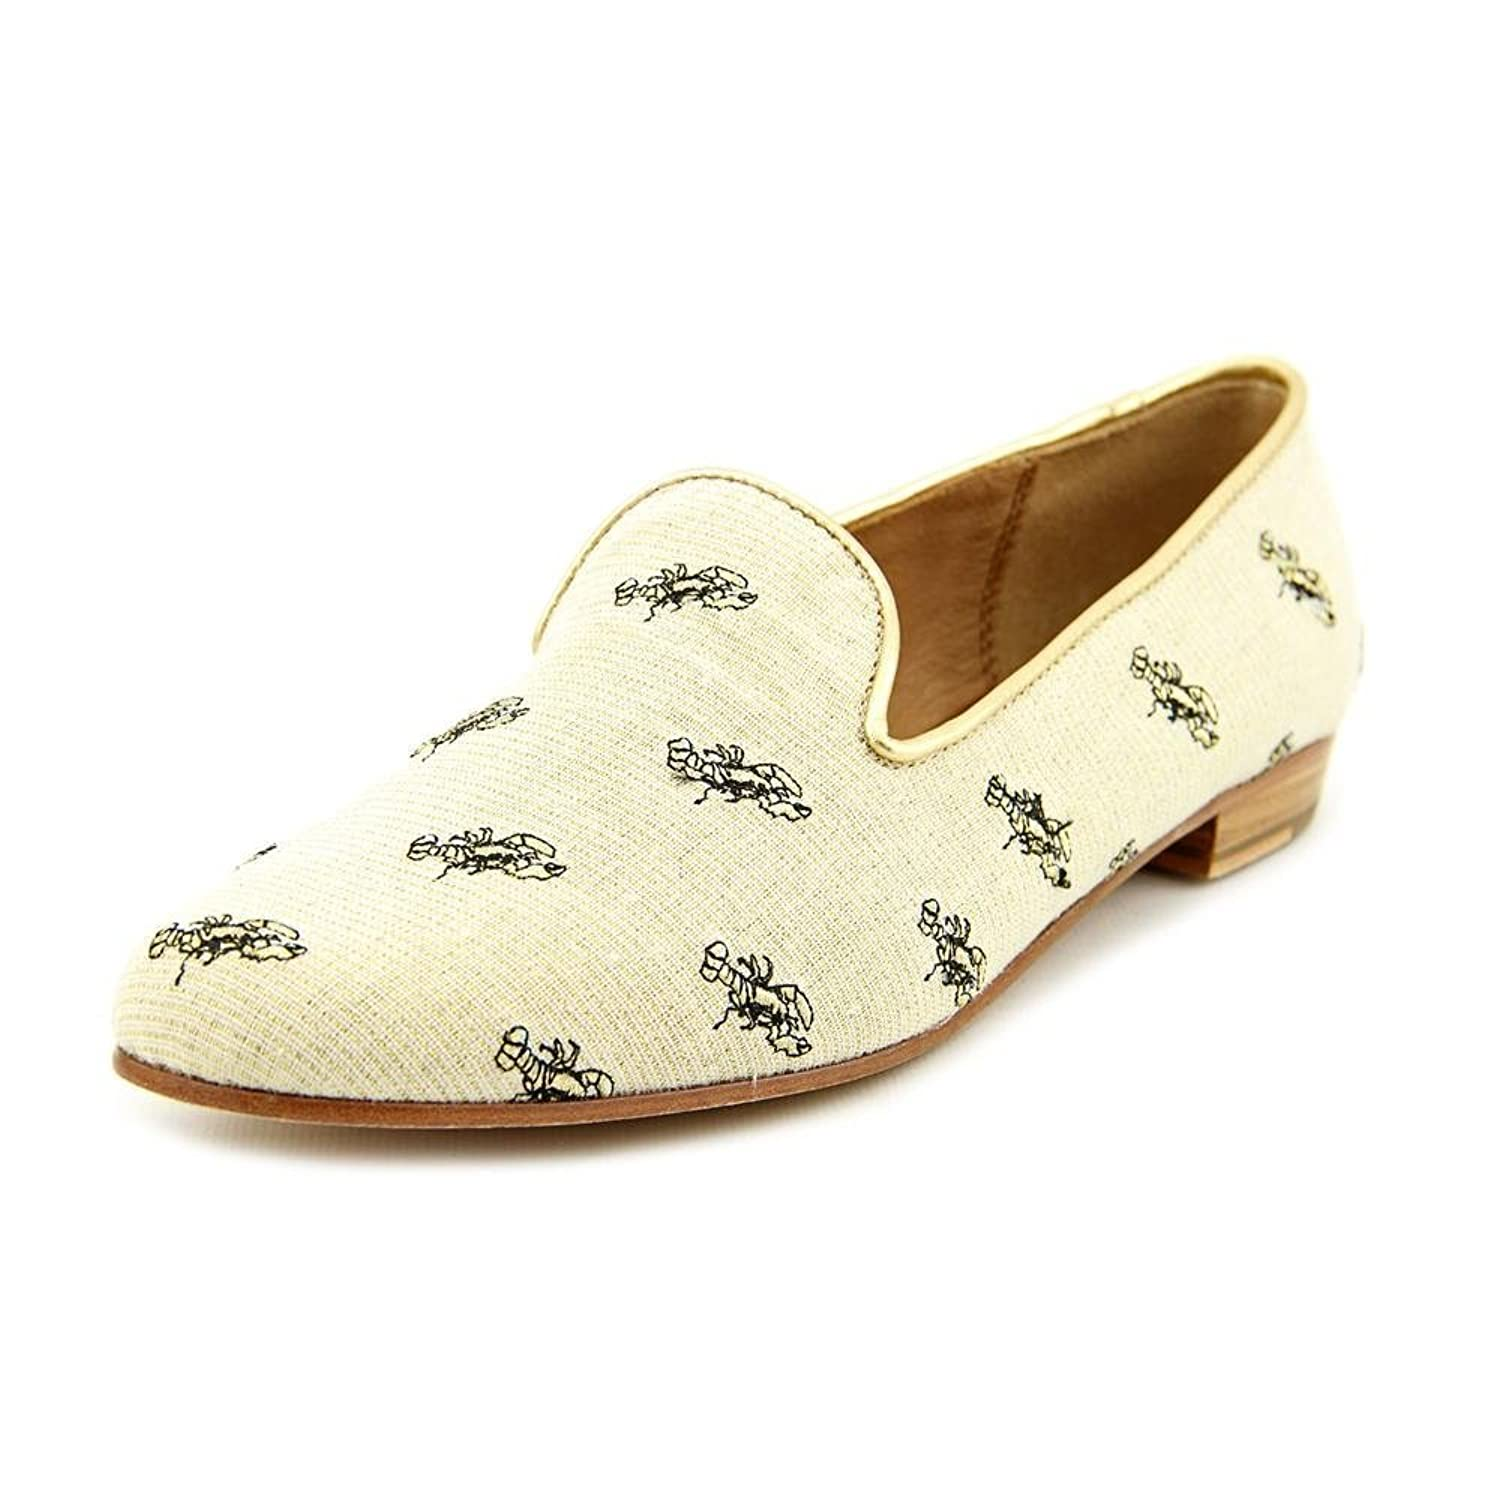 Coach Utopia Fabric Flats Shoes